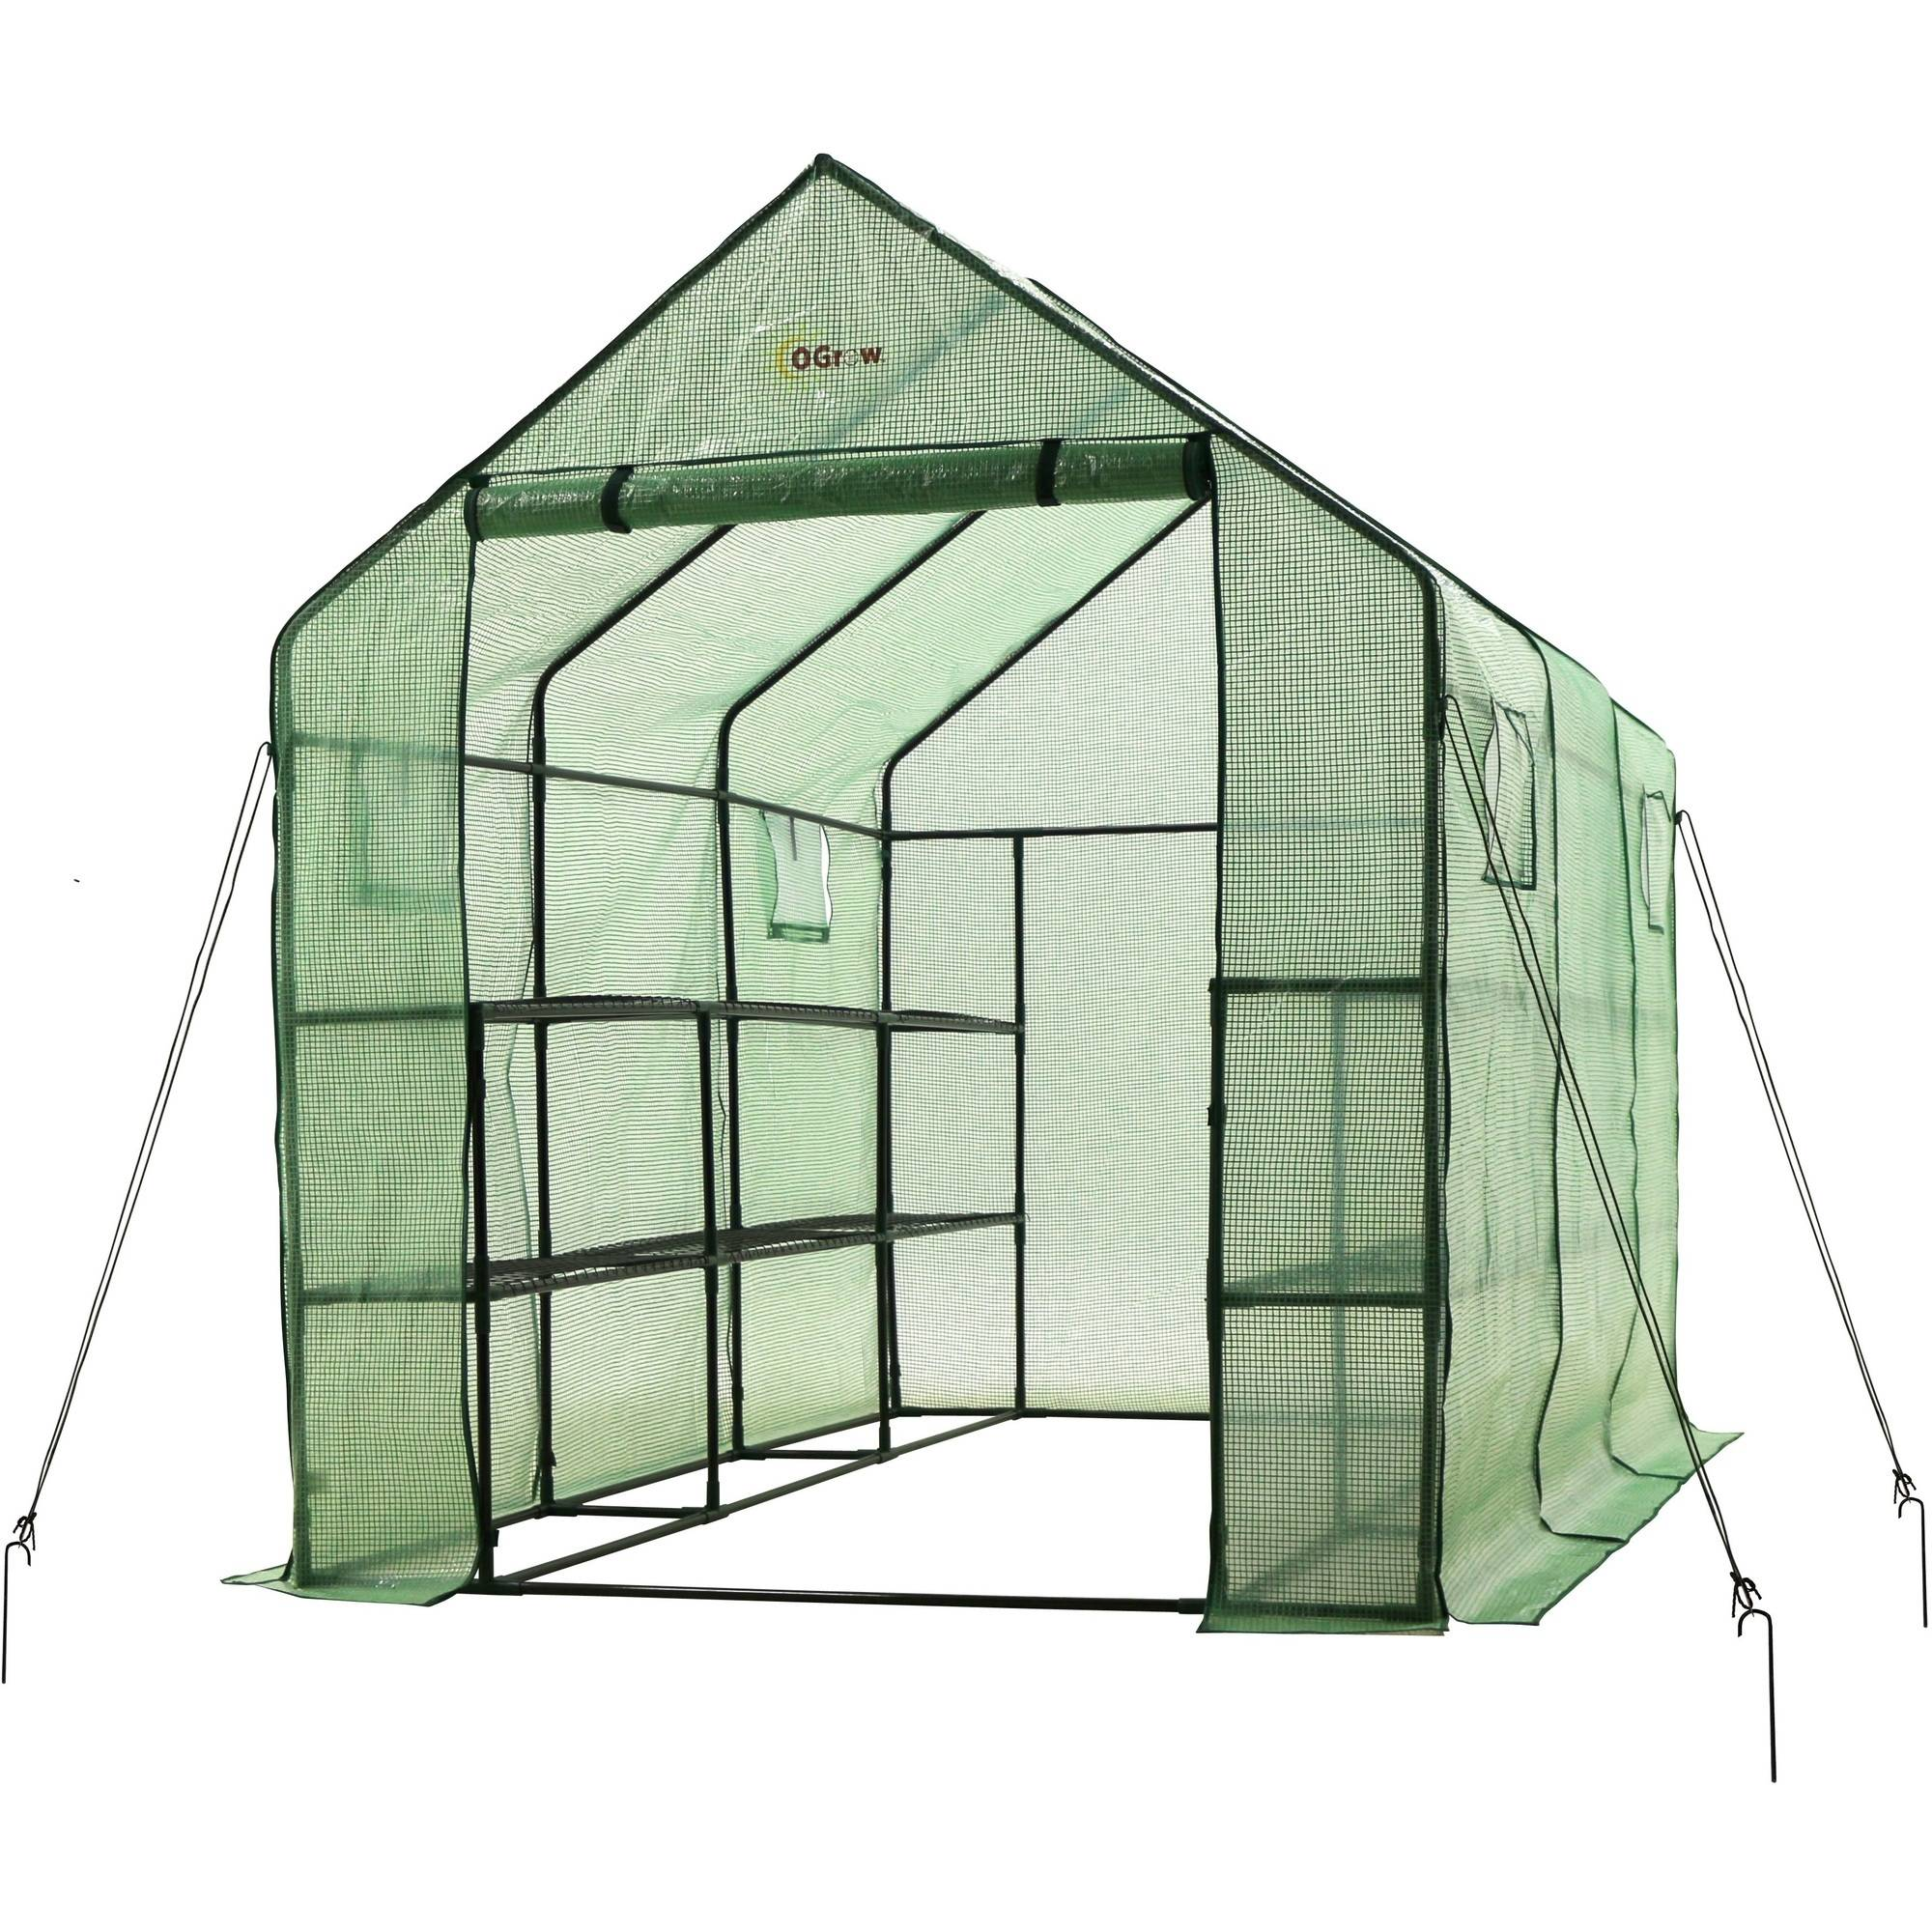 Ogrow Very Spacious and Sturdy Walk-In 2-Tier 12-Shelf Portable Garden Greenhouse with Windows